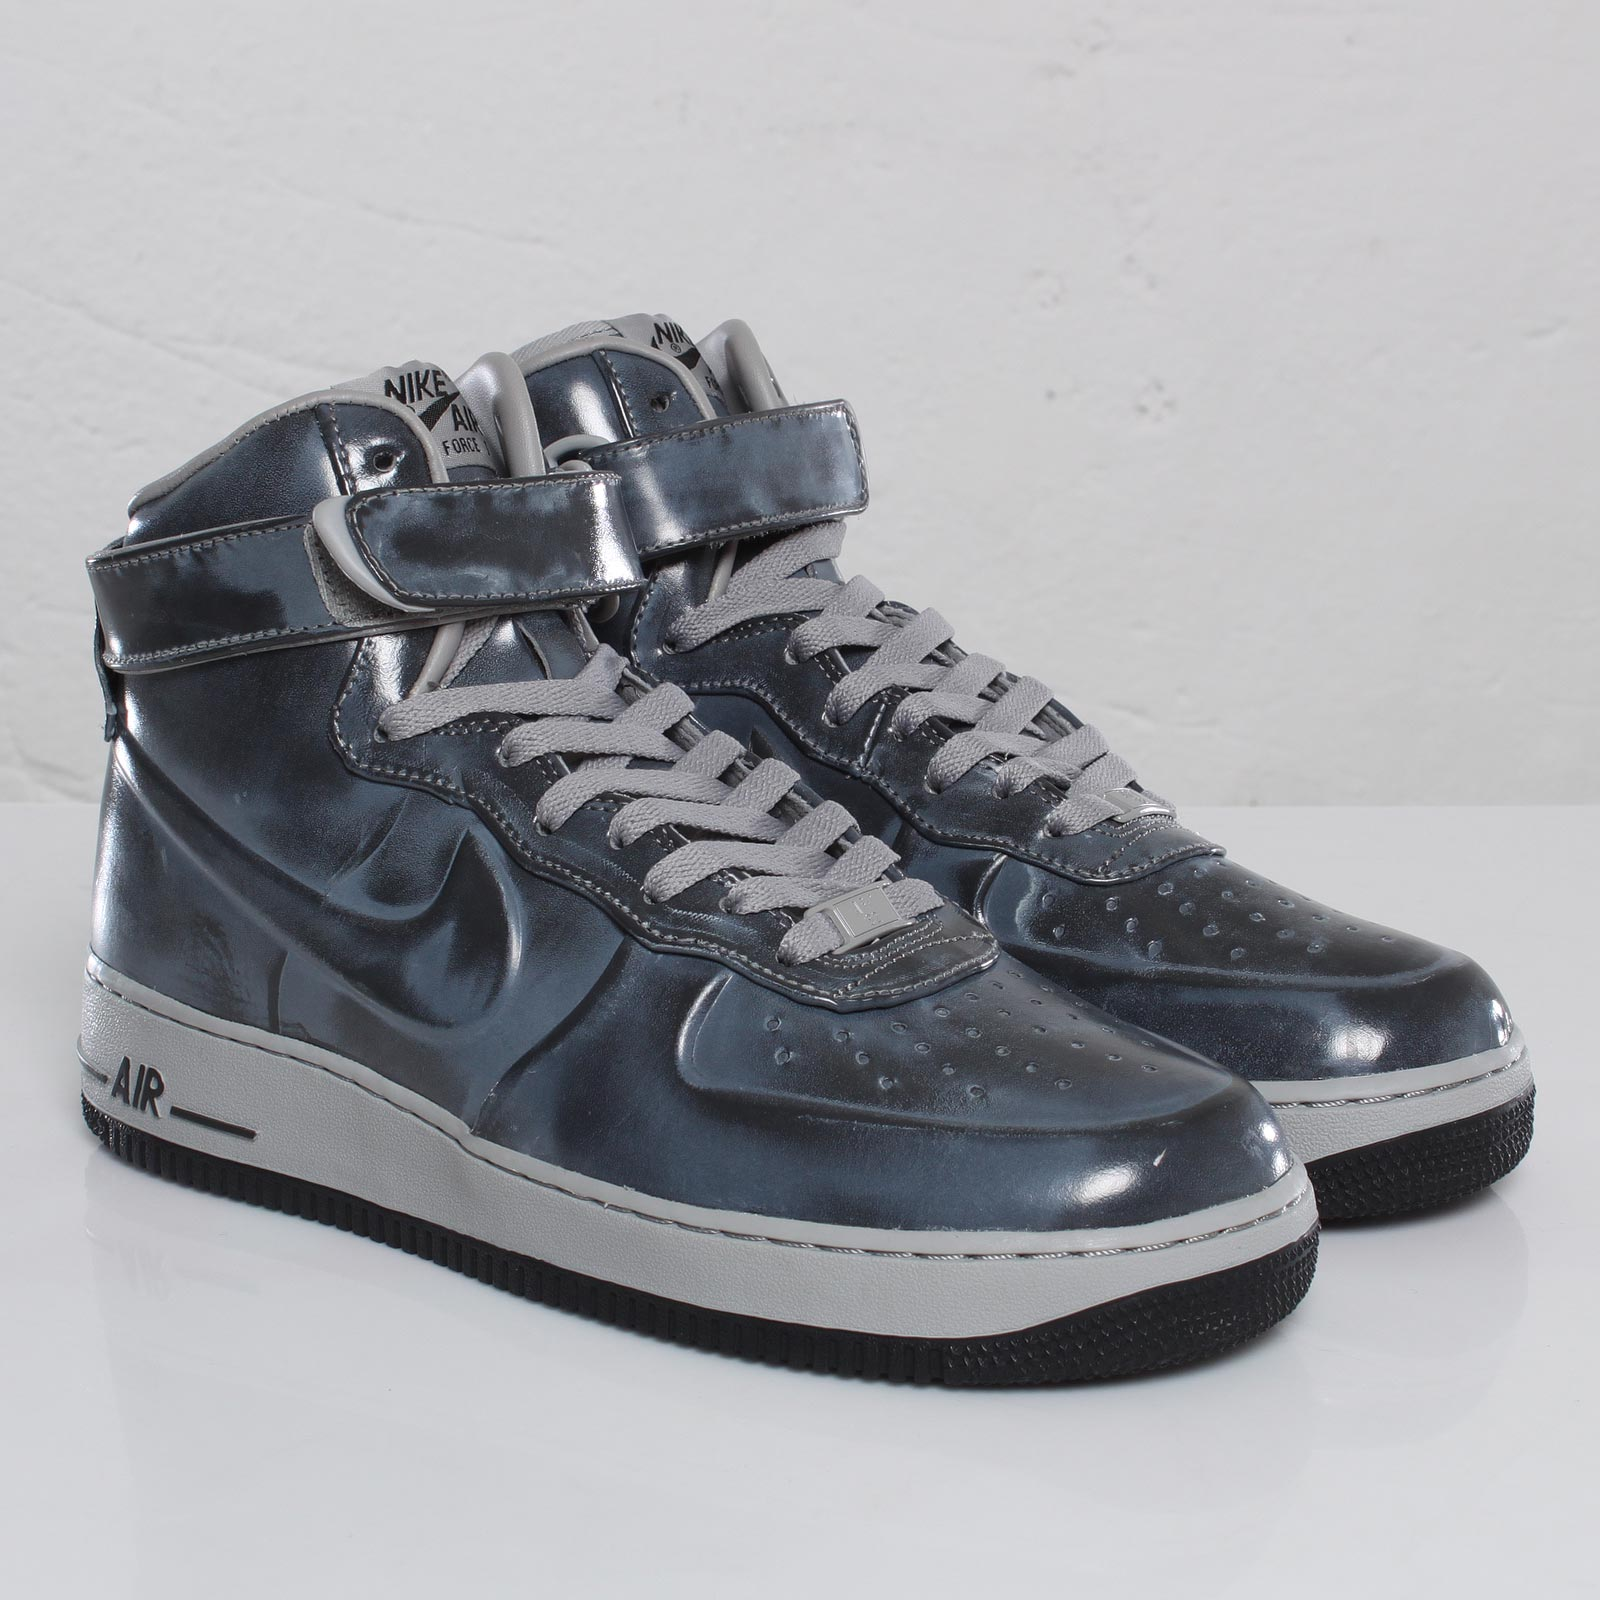 100% authentique 62106 cde9c Nike Air Force 1 High VT Supreme - 102858 - Sneakersnstuff ...